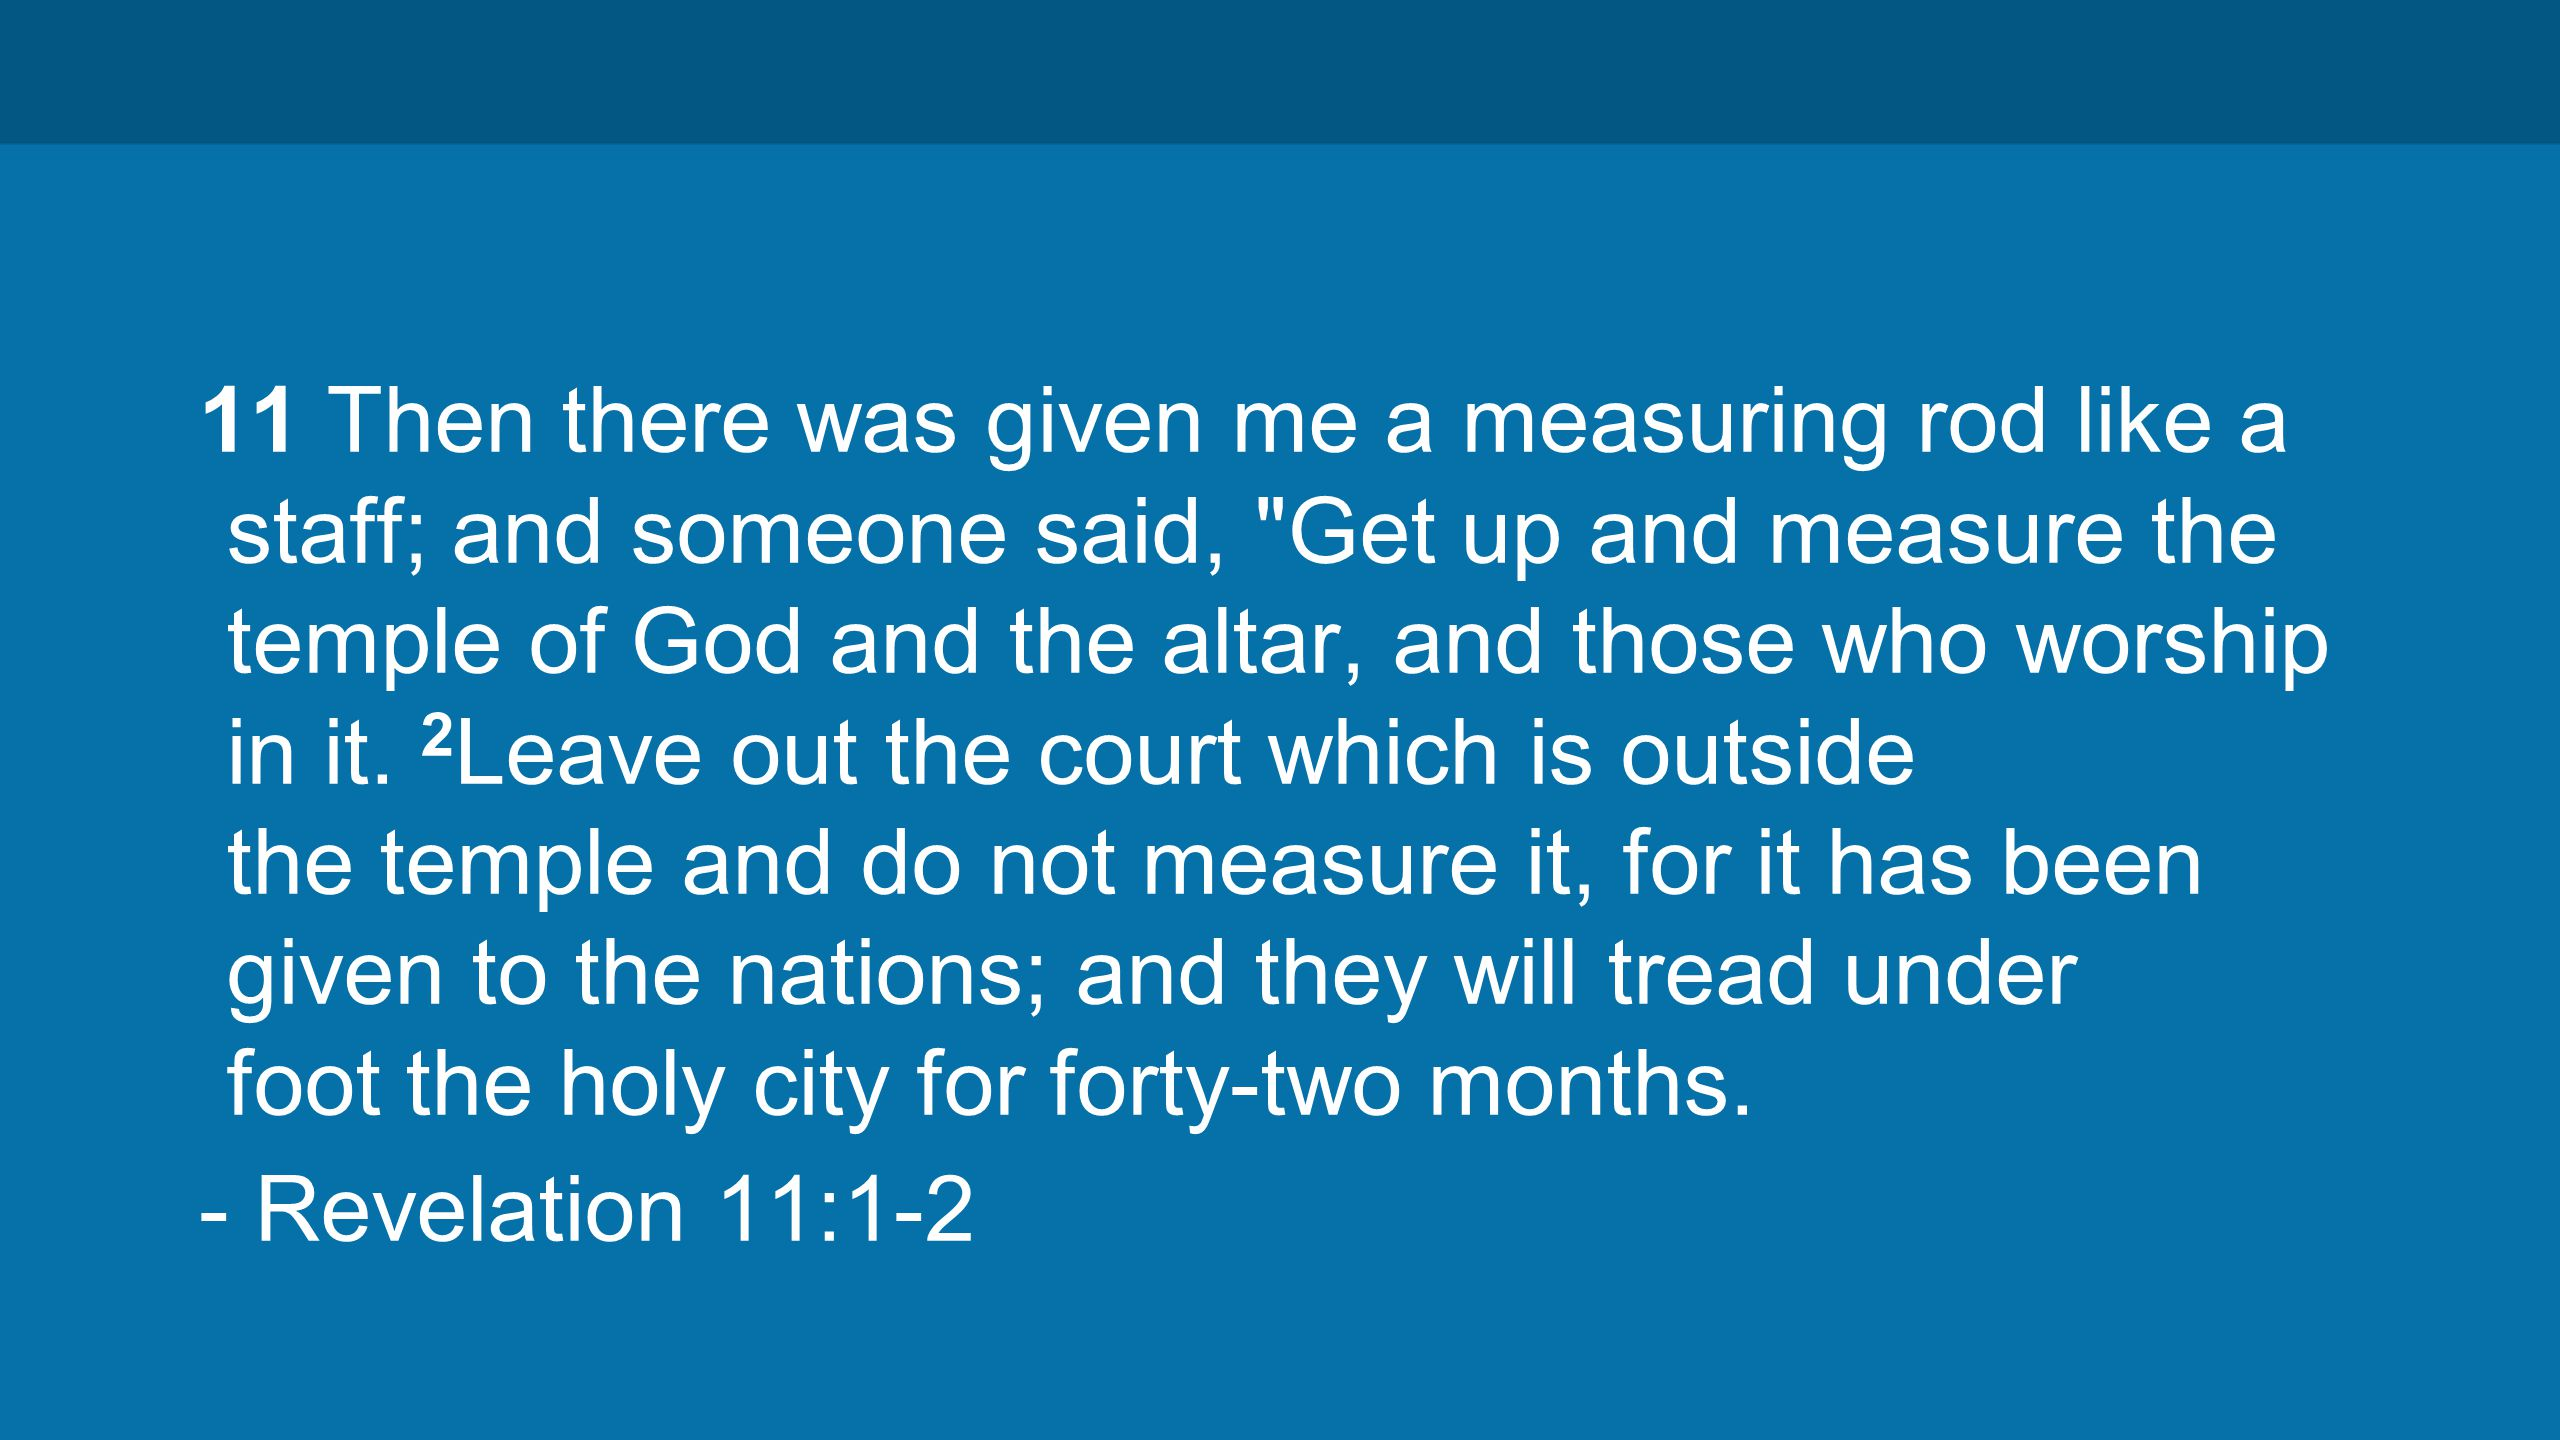 11 Then there was given me a measuring rod like a staff; and someone said, Get up and measure the temple of God and the altar, and those who worship in it.